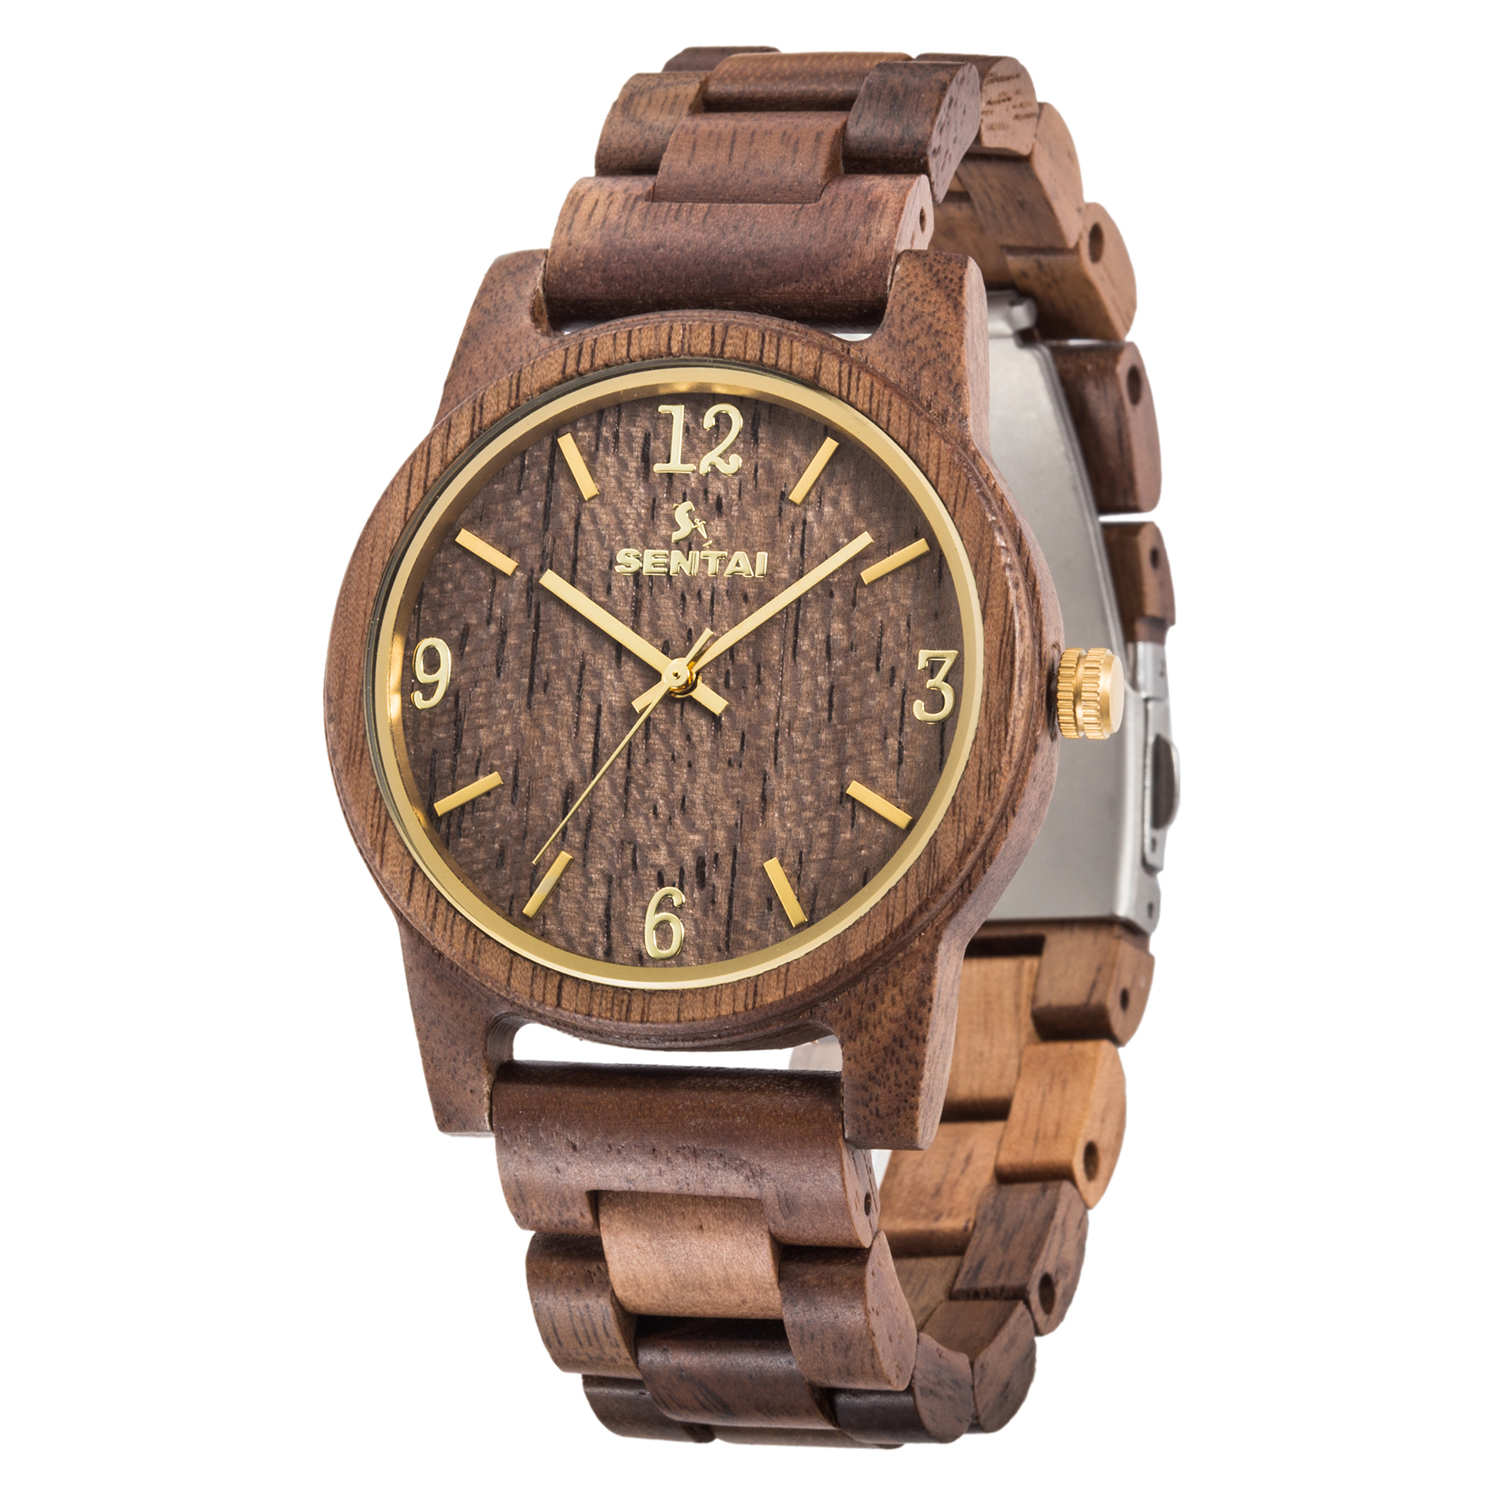 Luxury Brand Mens Wooden Watch Arabic Numberal Big Dial Wood Band Quartz Male Wrist Watch Reloj de Madera Genuine for Gifts fashion top gift item wood watches men s analog simple bmaboo hand made wrist watch male sports quartz watch reloj de madera